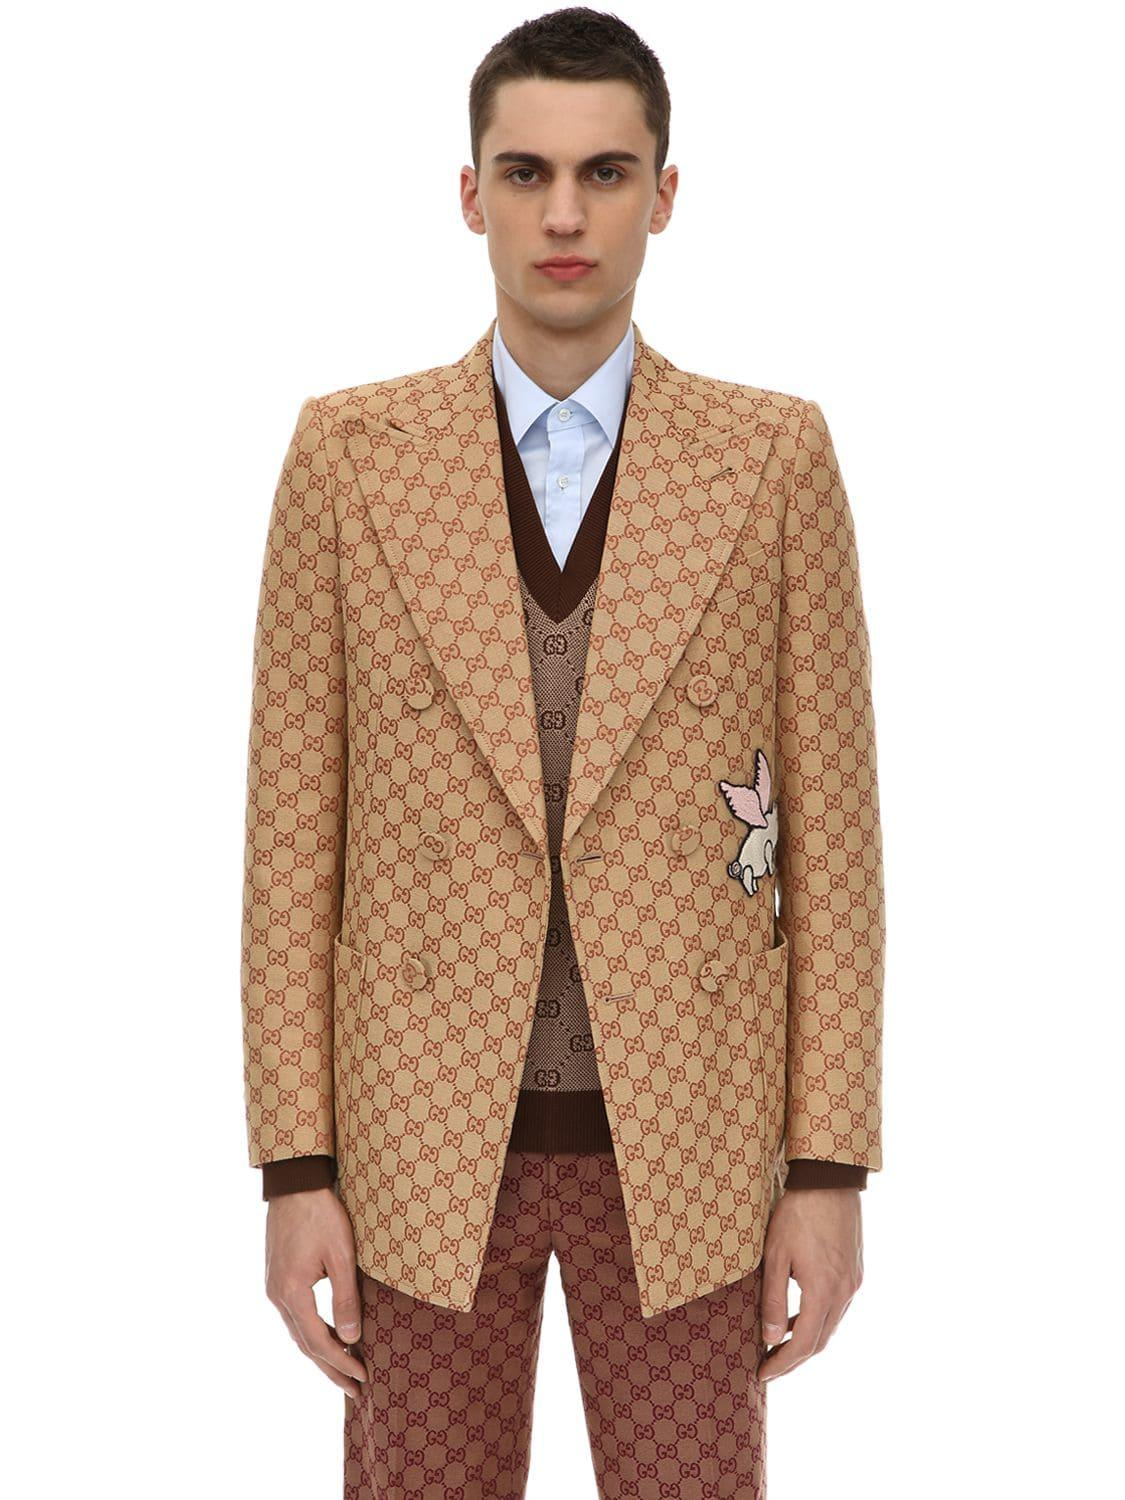 c6e2a1f3d Lyst - Gucci Gg Cotton Blend Jacket in Natural for Men